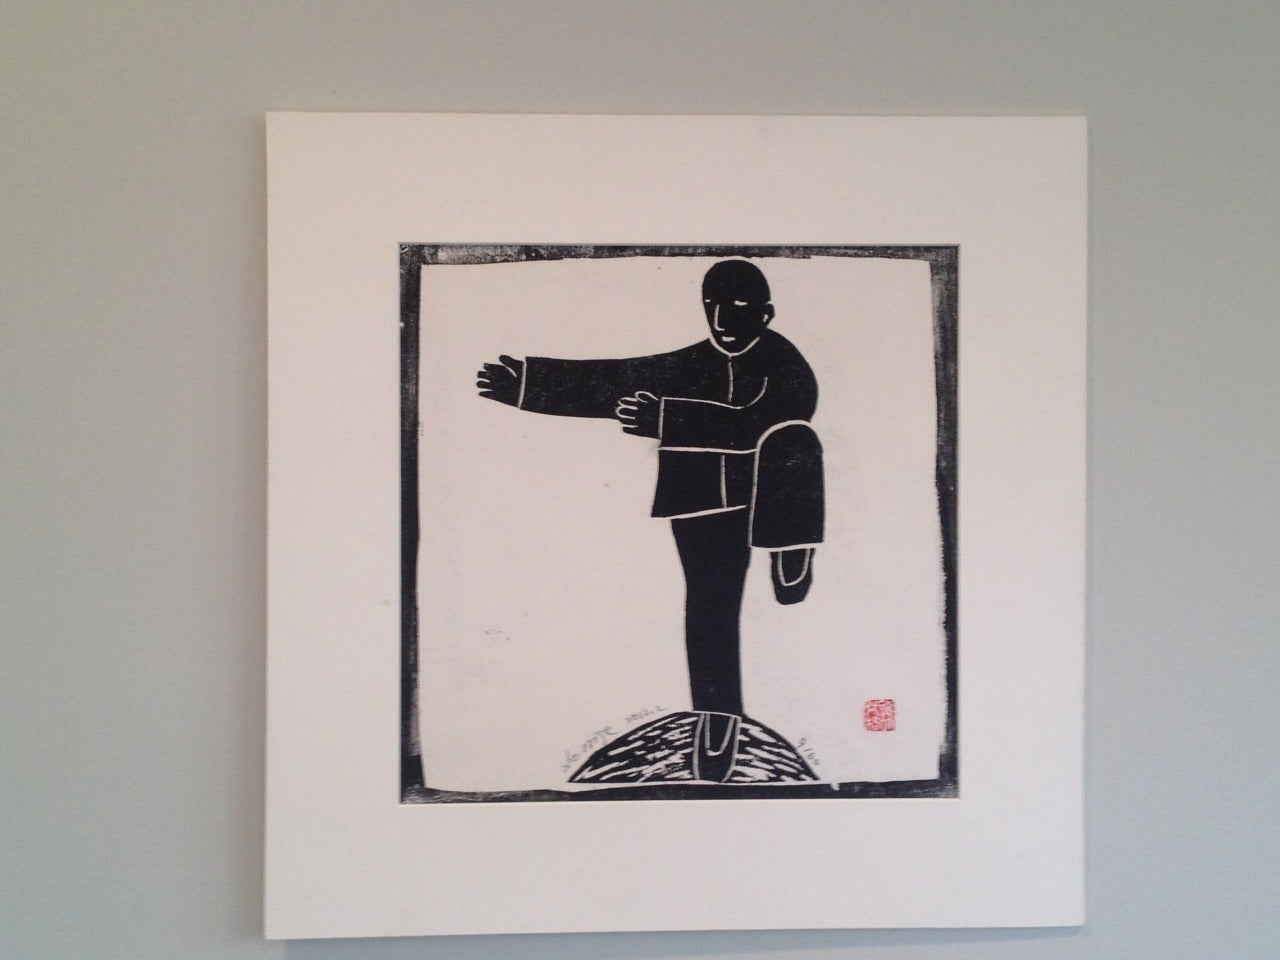 Xie Ai Ge is one of the most promising and noted rising young Chinese stars in the Asian art world, and international art scene, known for her series of Tai Ji sculptures.  For this series of wood block prints - there are 12 different poses. Edn